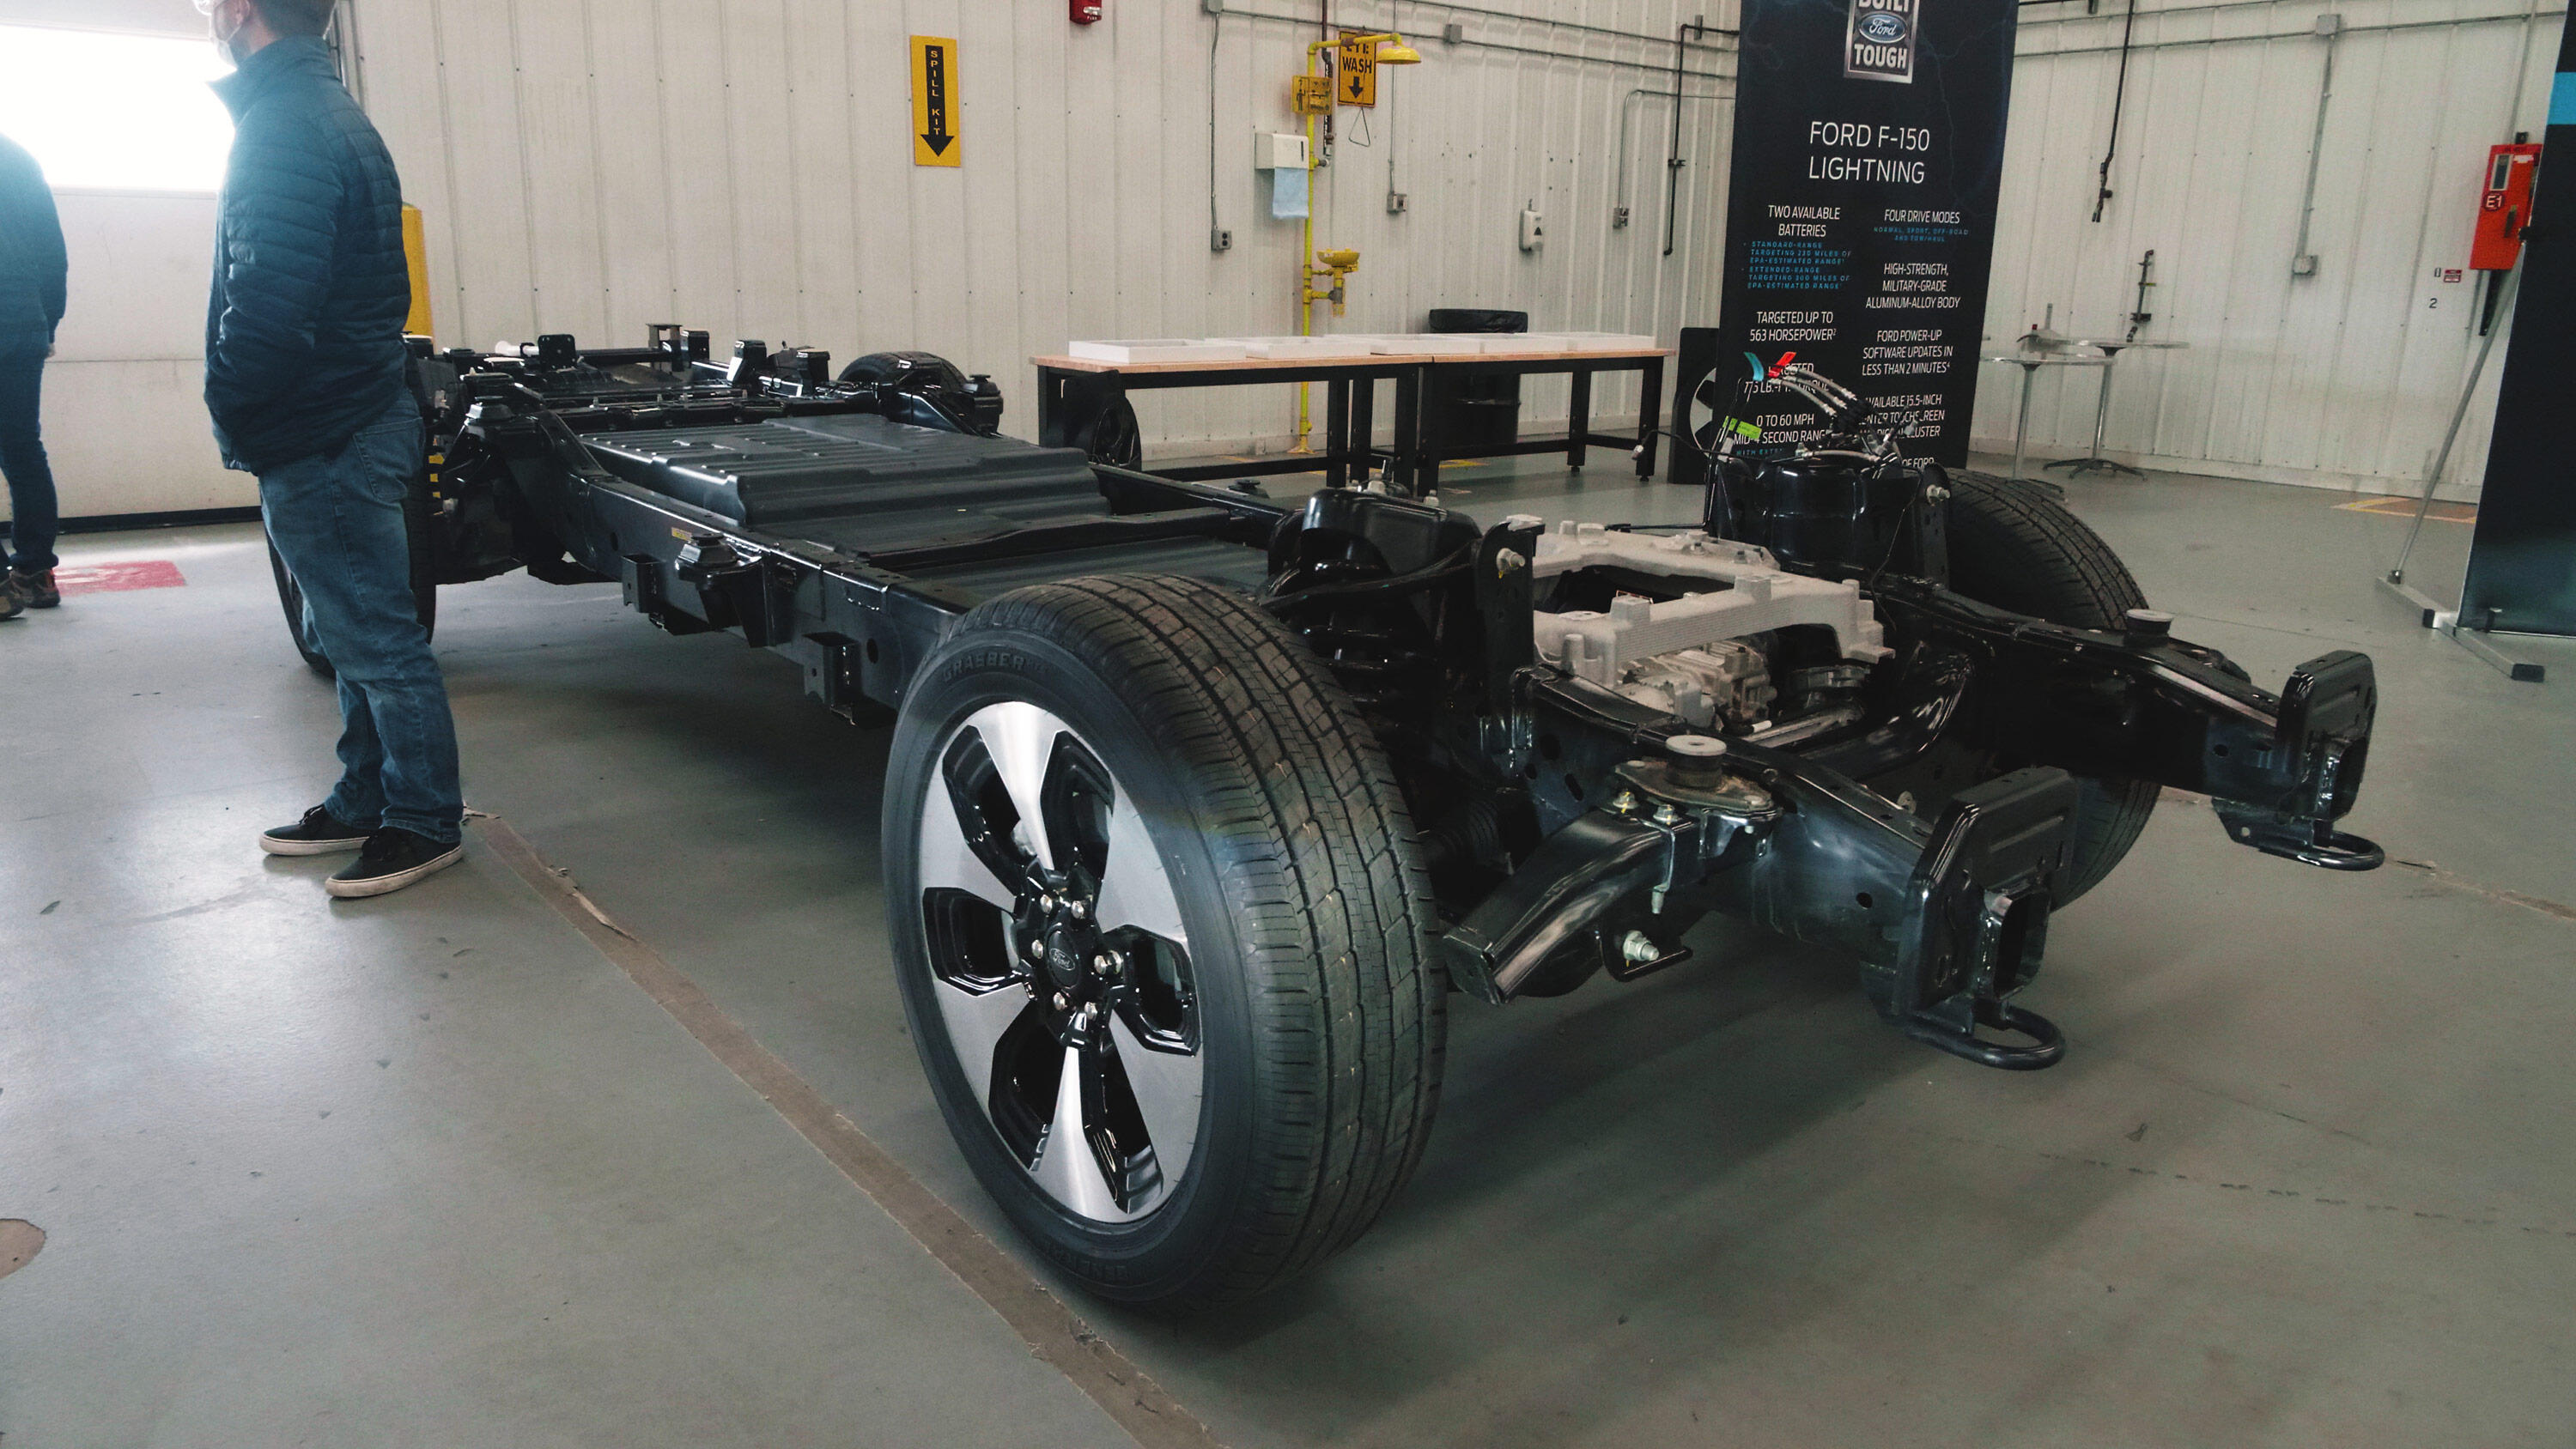 2022 Ford F-150 Lightning - chassis